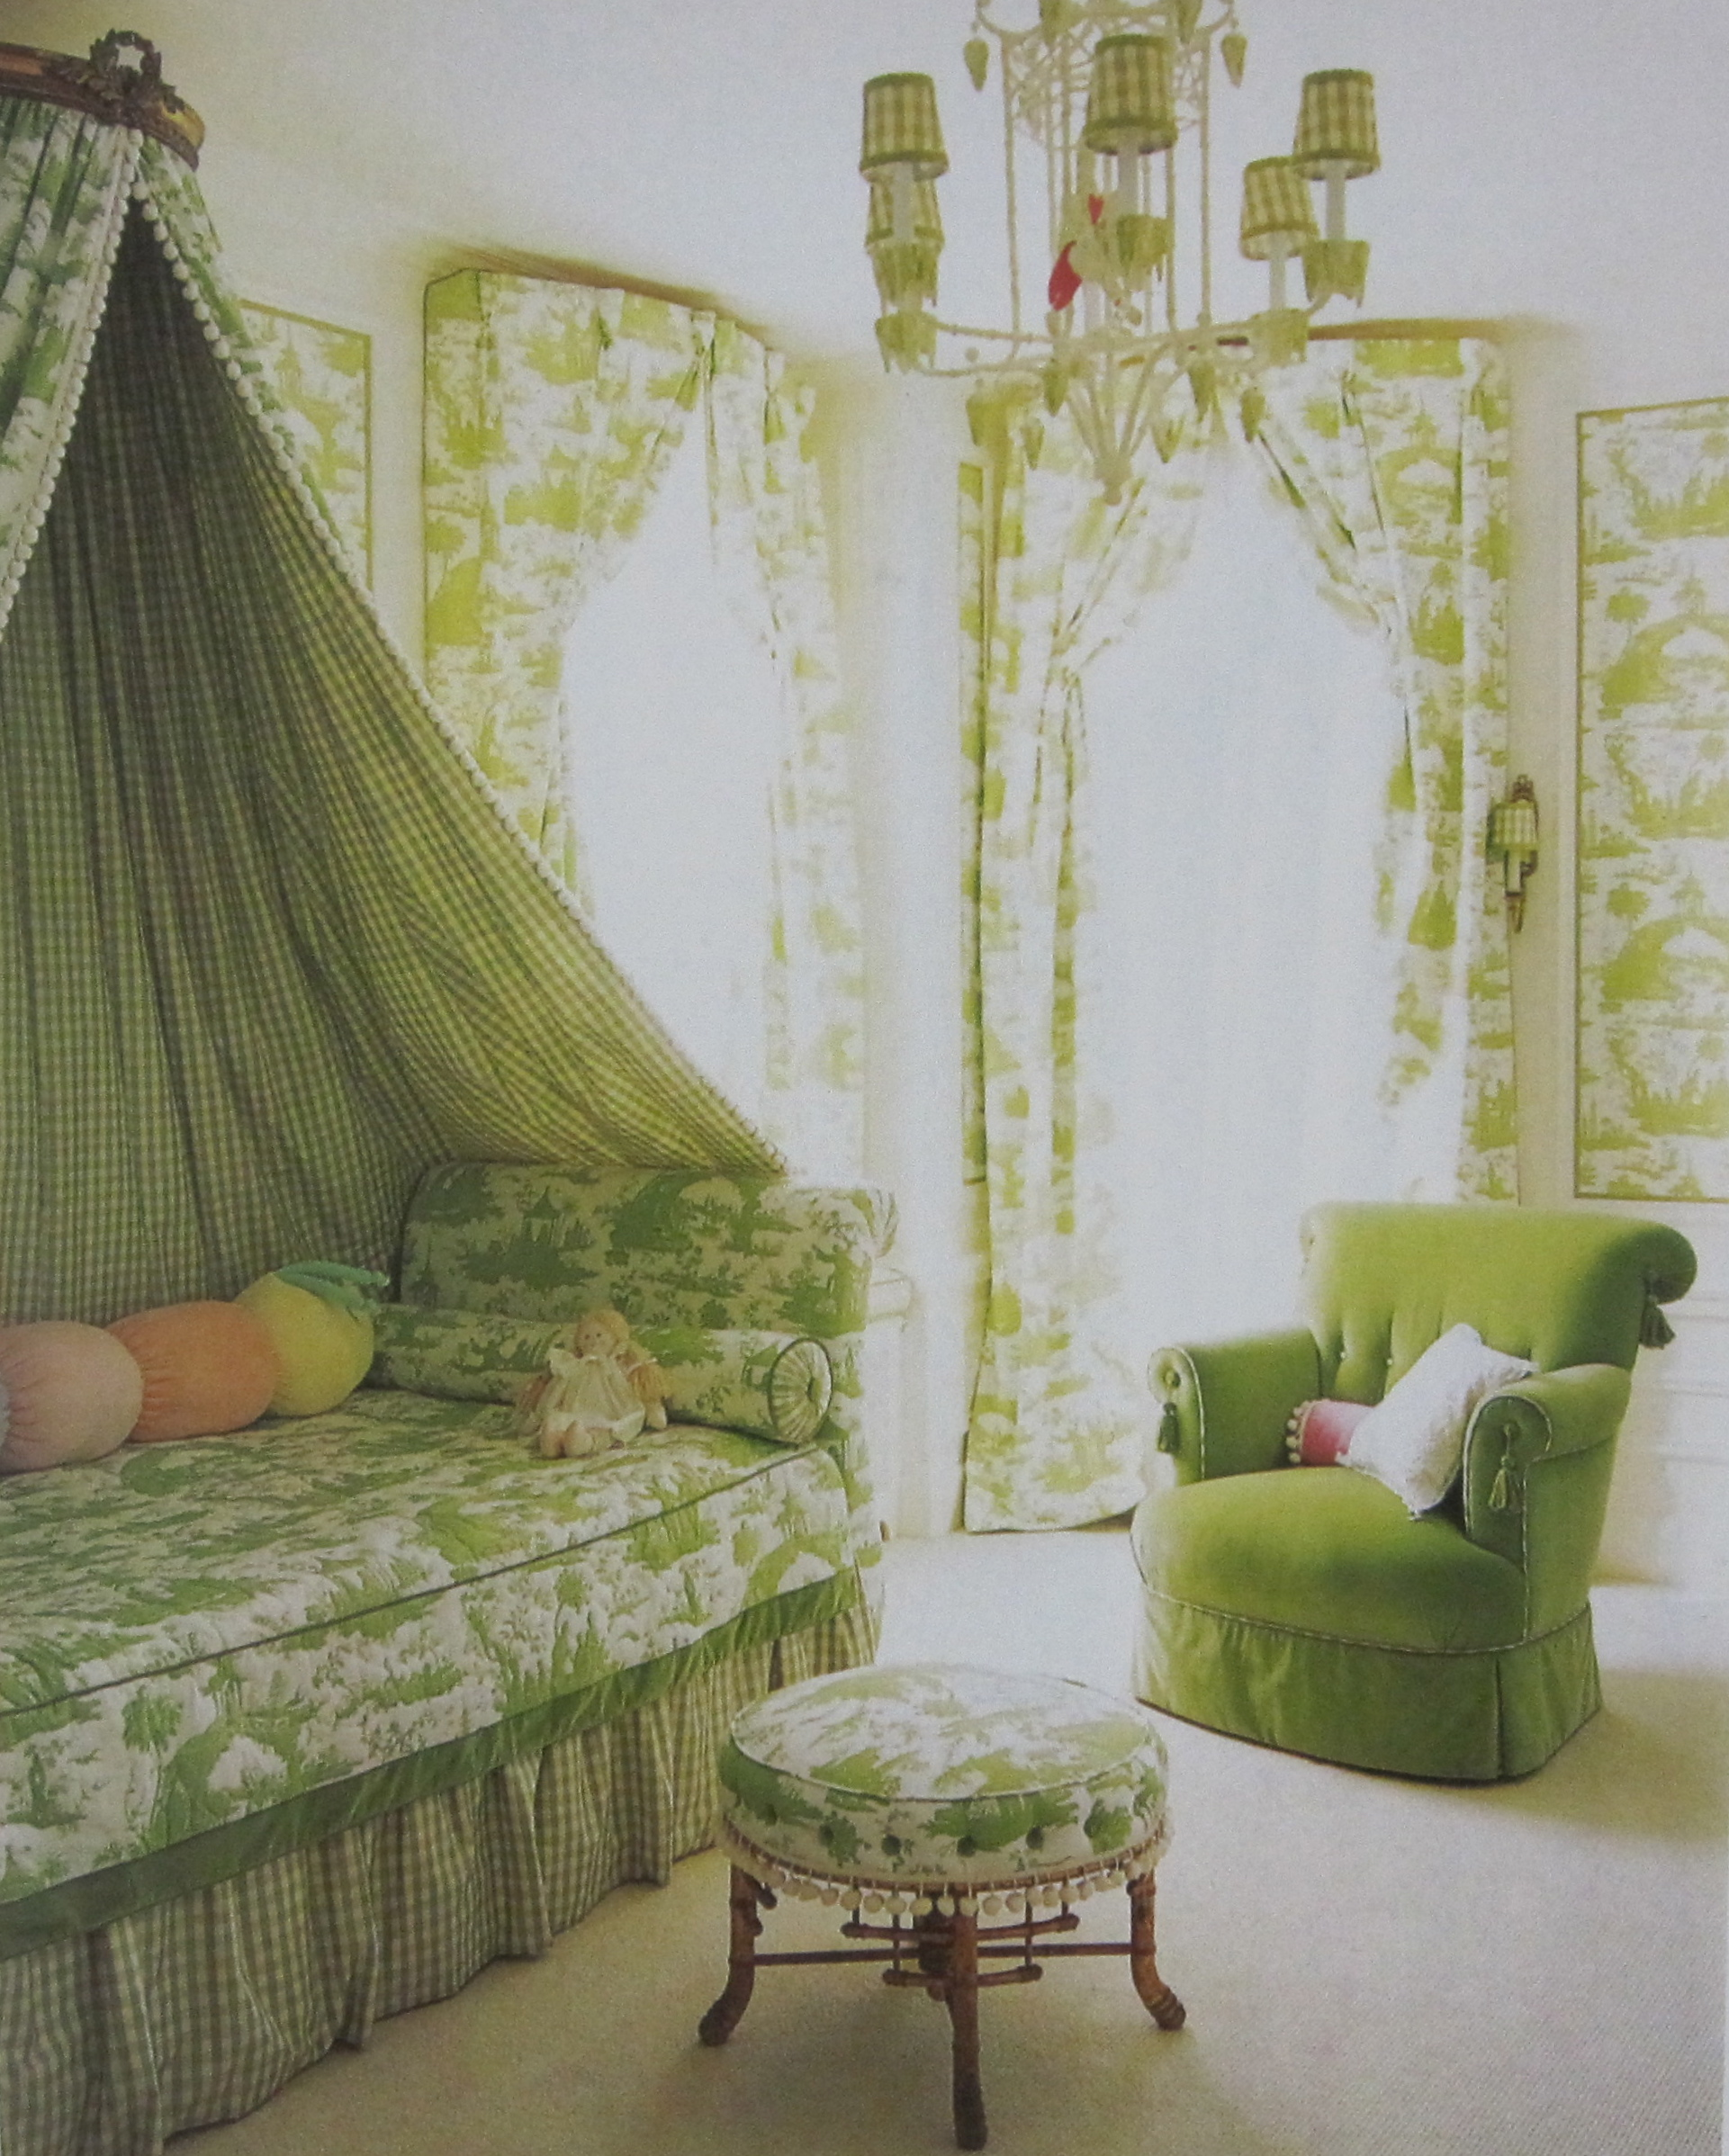 Bedroom Decorating Ideas Totally Toile: Bower Power…A Failsafe Formula For Girls Room Decorating